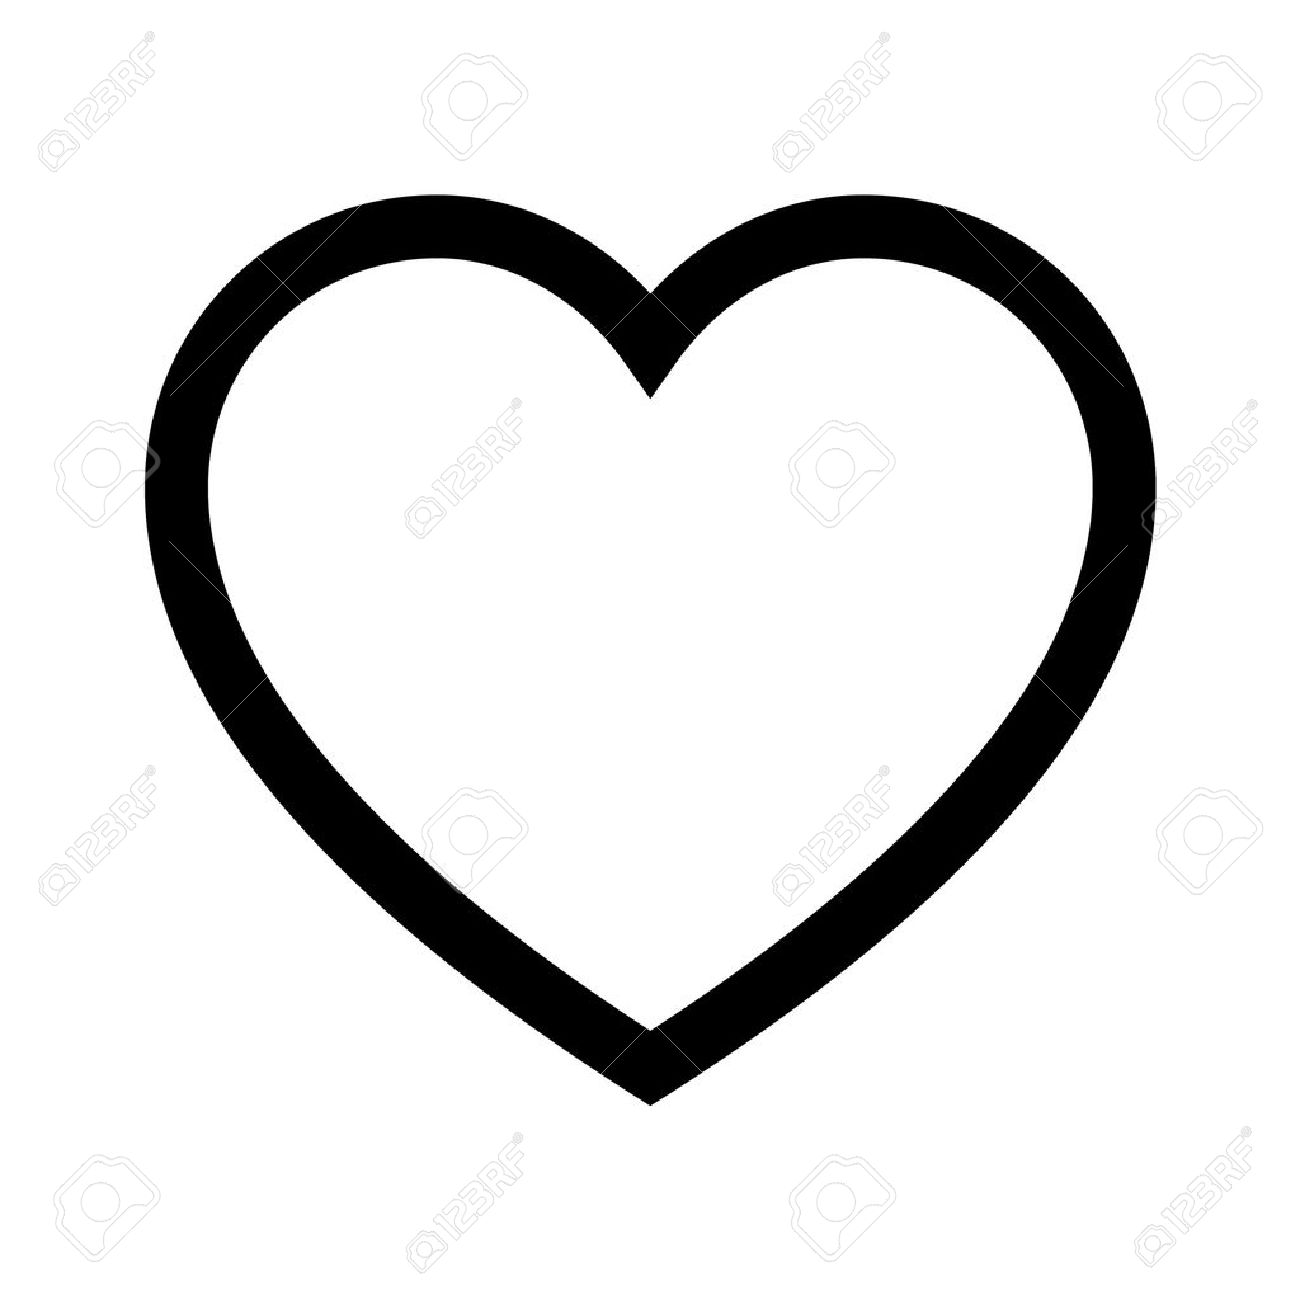 heart of love line art icon for apps and websites royalty free rh 123rf com heart line art png heart line art images